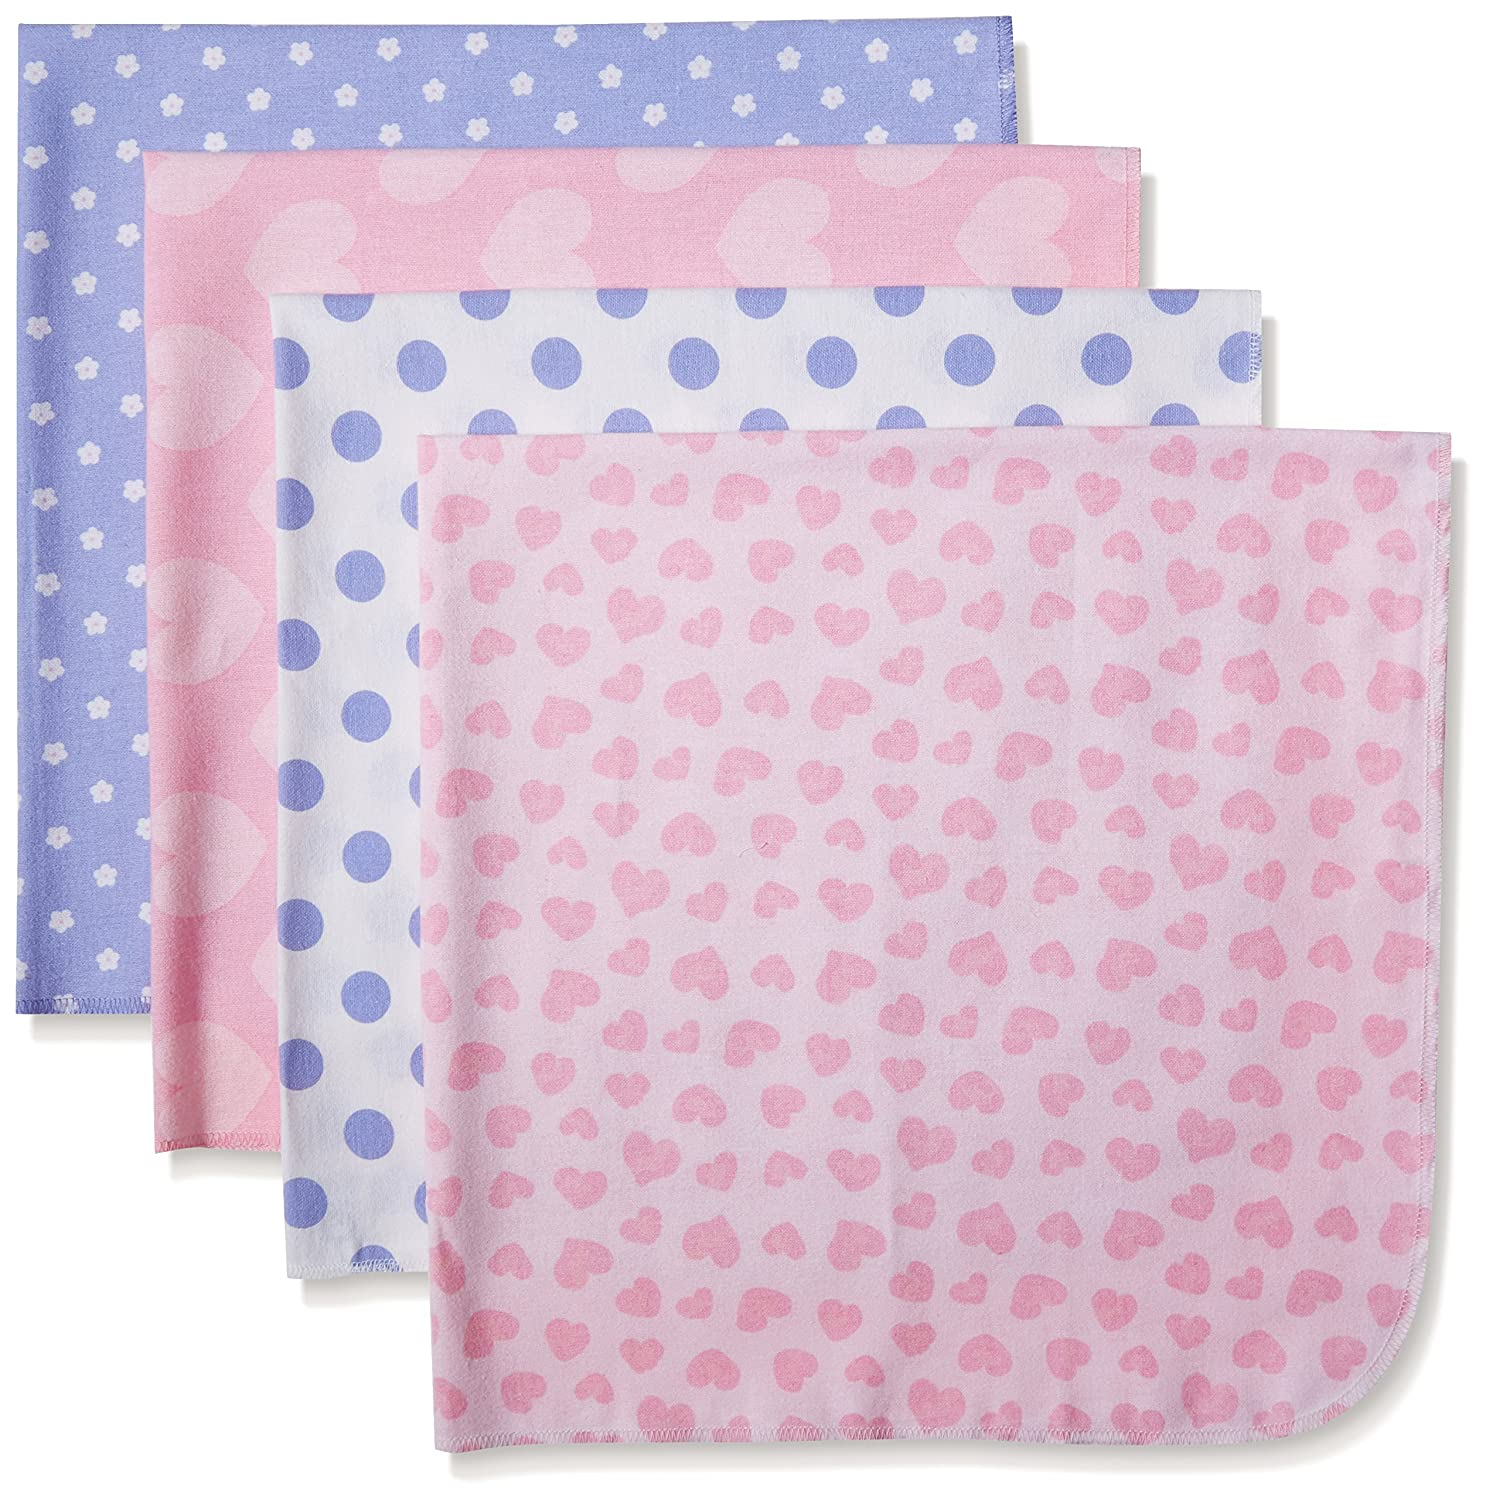 Gerber baby-girls Baby 4 Pack Flannel Receiving Blankets Flowers One Size (Pack of 4) Gerber Children's Apparel 85015416AG16OSZ